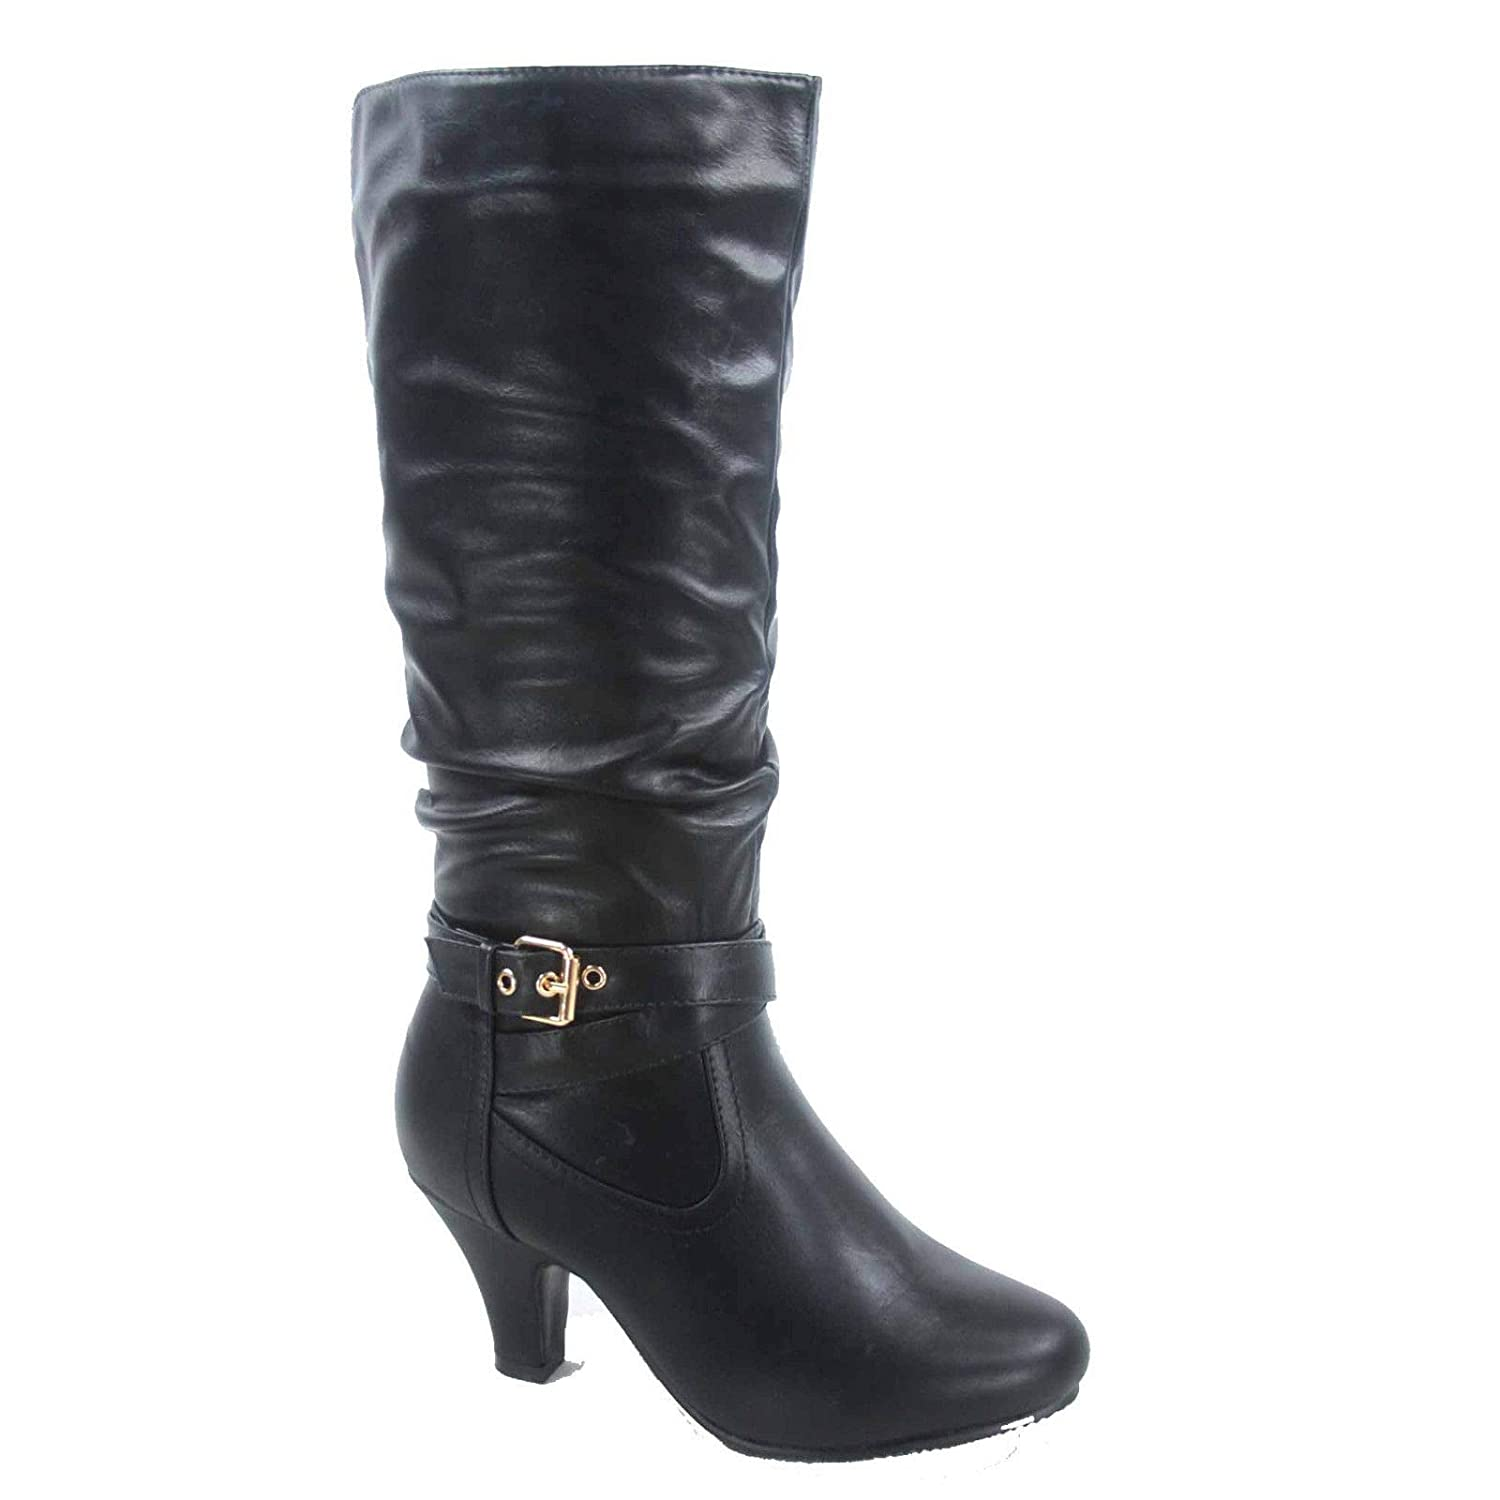 Black Forever Link FZ-Kale-10 Women's Fashion Buckle Strap Slouch Zipper Low Heel Mid-Calf Boot shoes